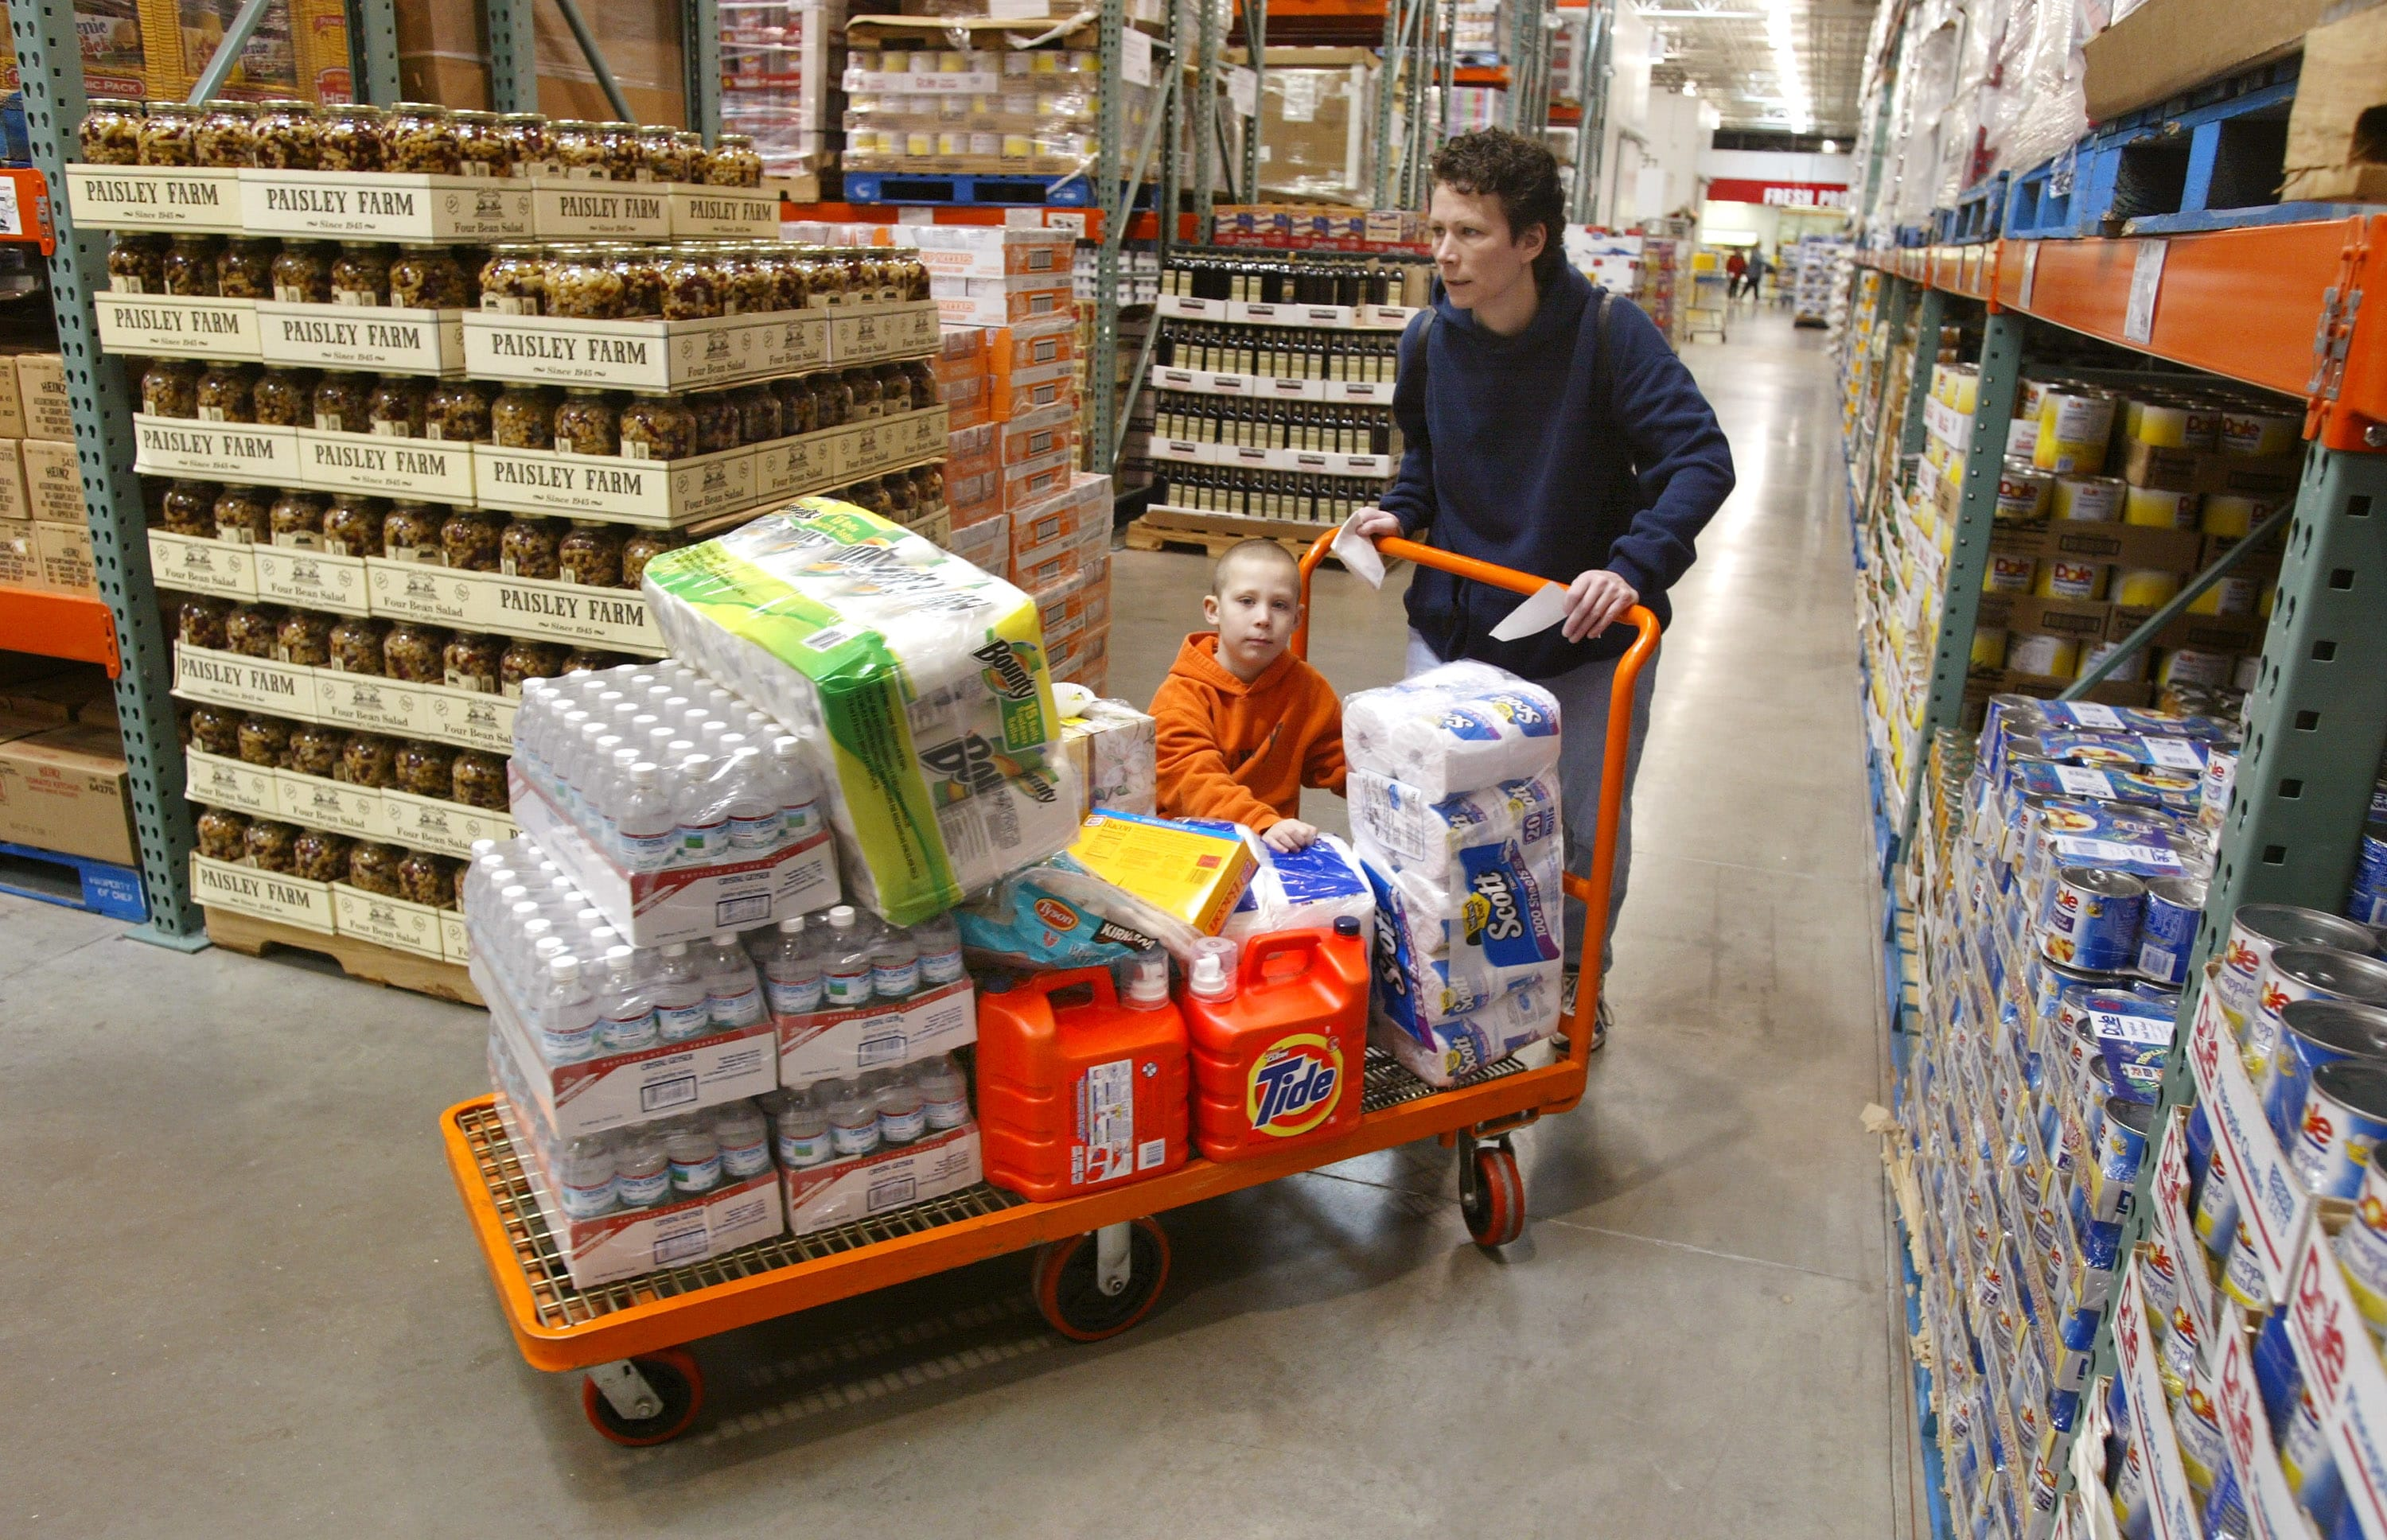 Red hot Costco shares fall after Oppenheimer downgrades, citing a record valuation